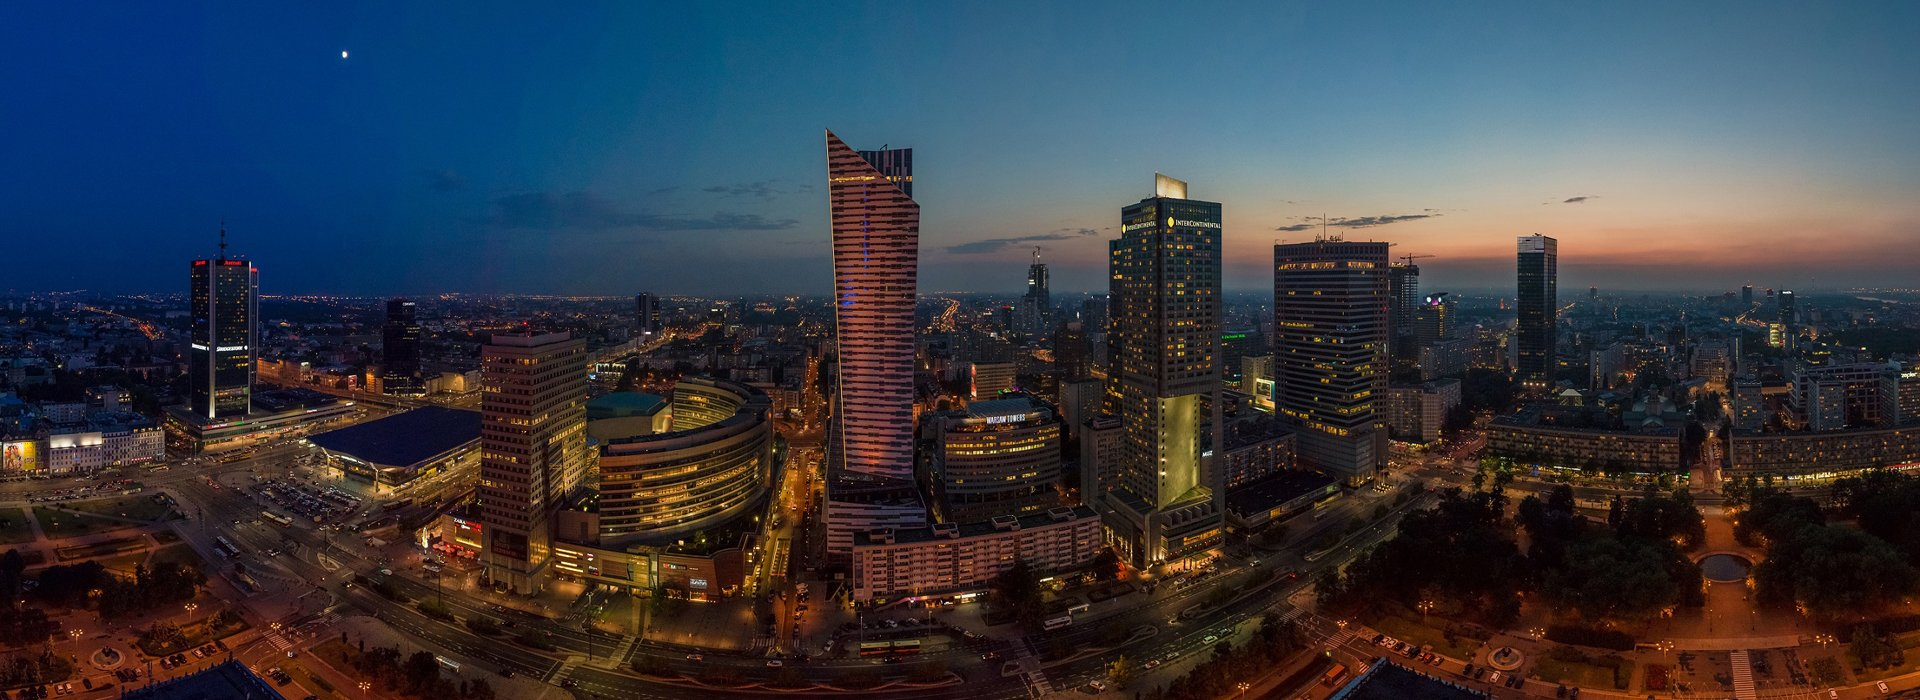 Warsaw wonderful view just after sunset